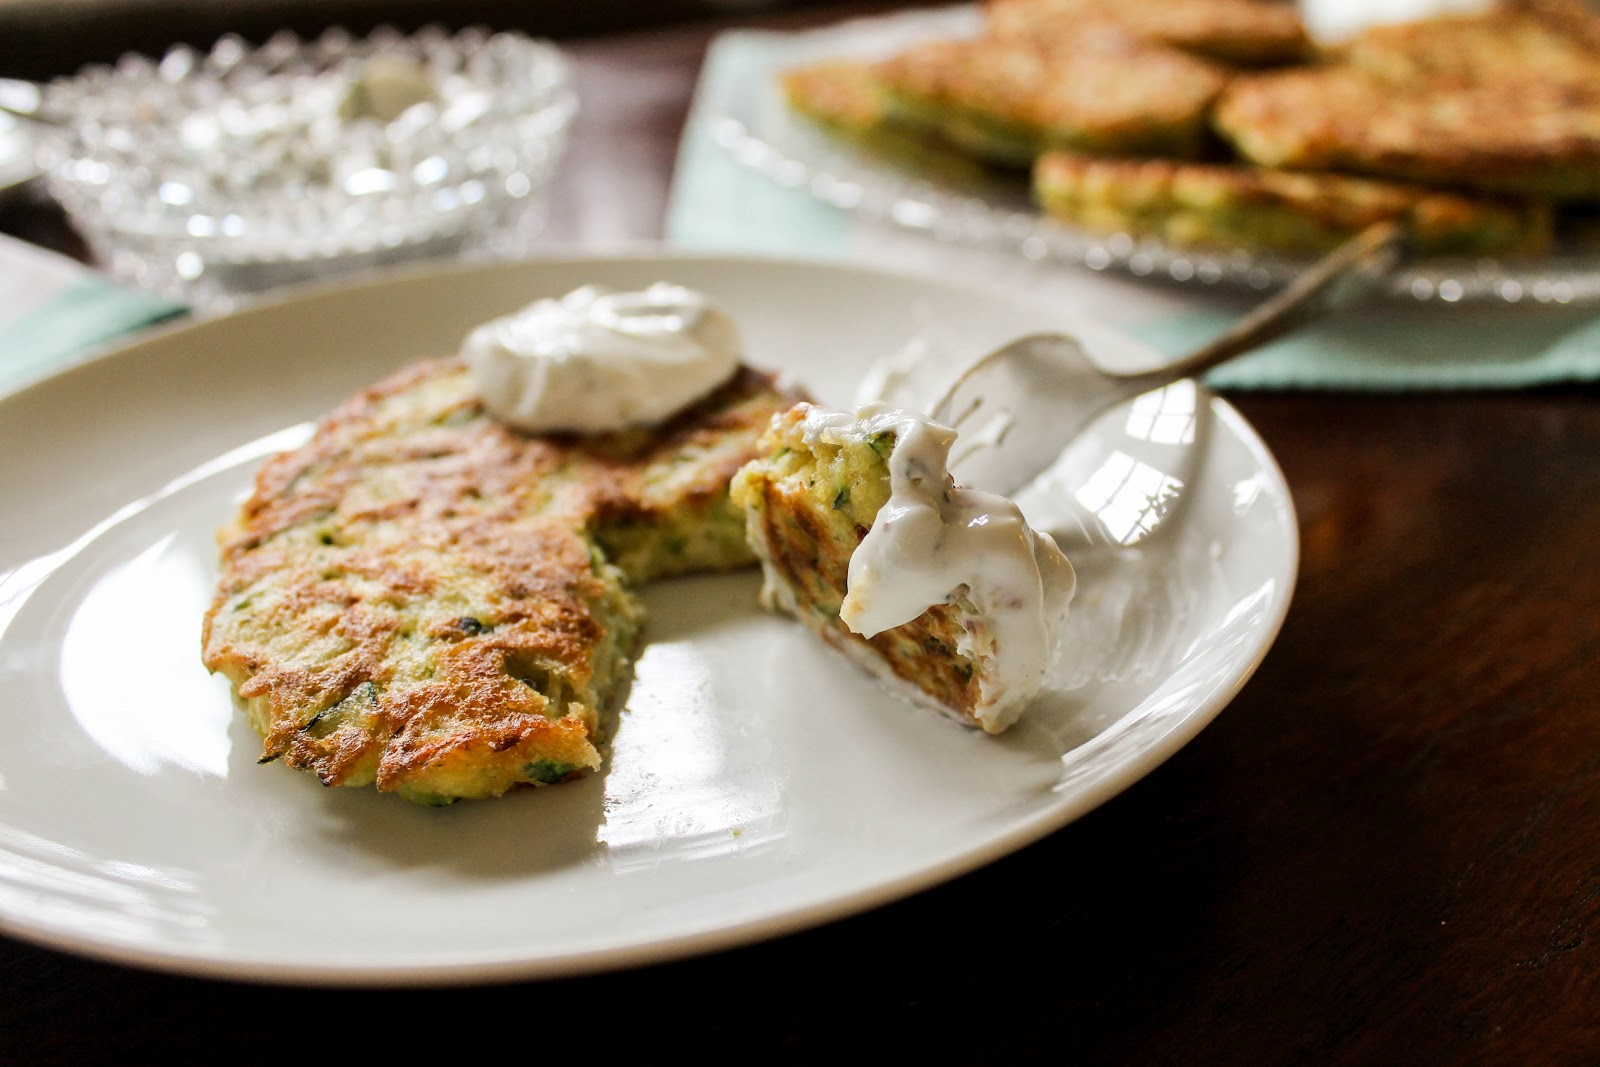 The Quixotic Table: Savory Zucchini Pancakes